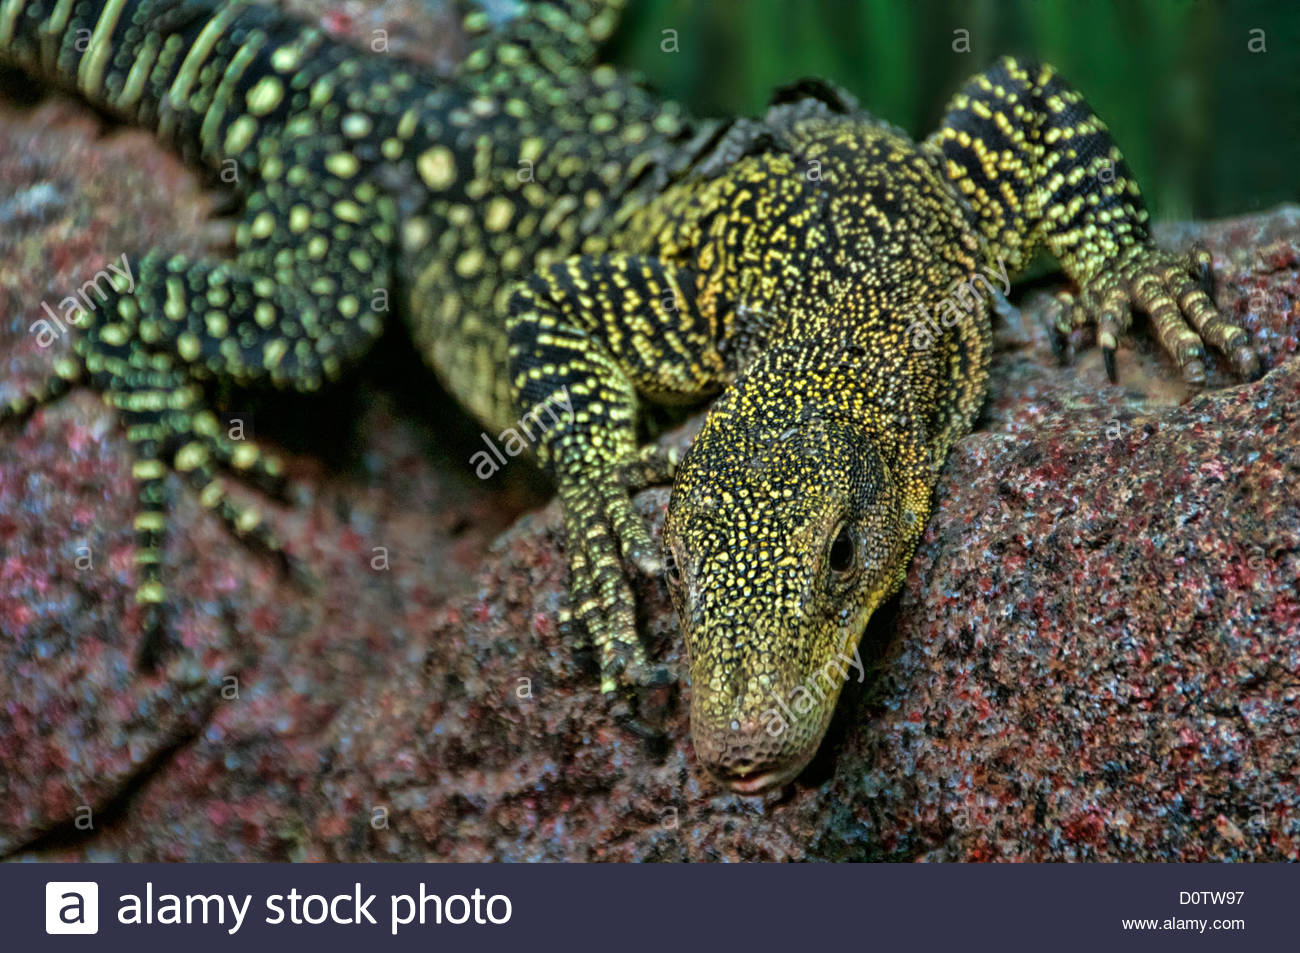 Crocodile Monitor clipart #4, Download drawings